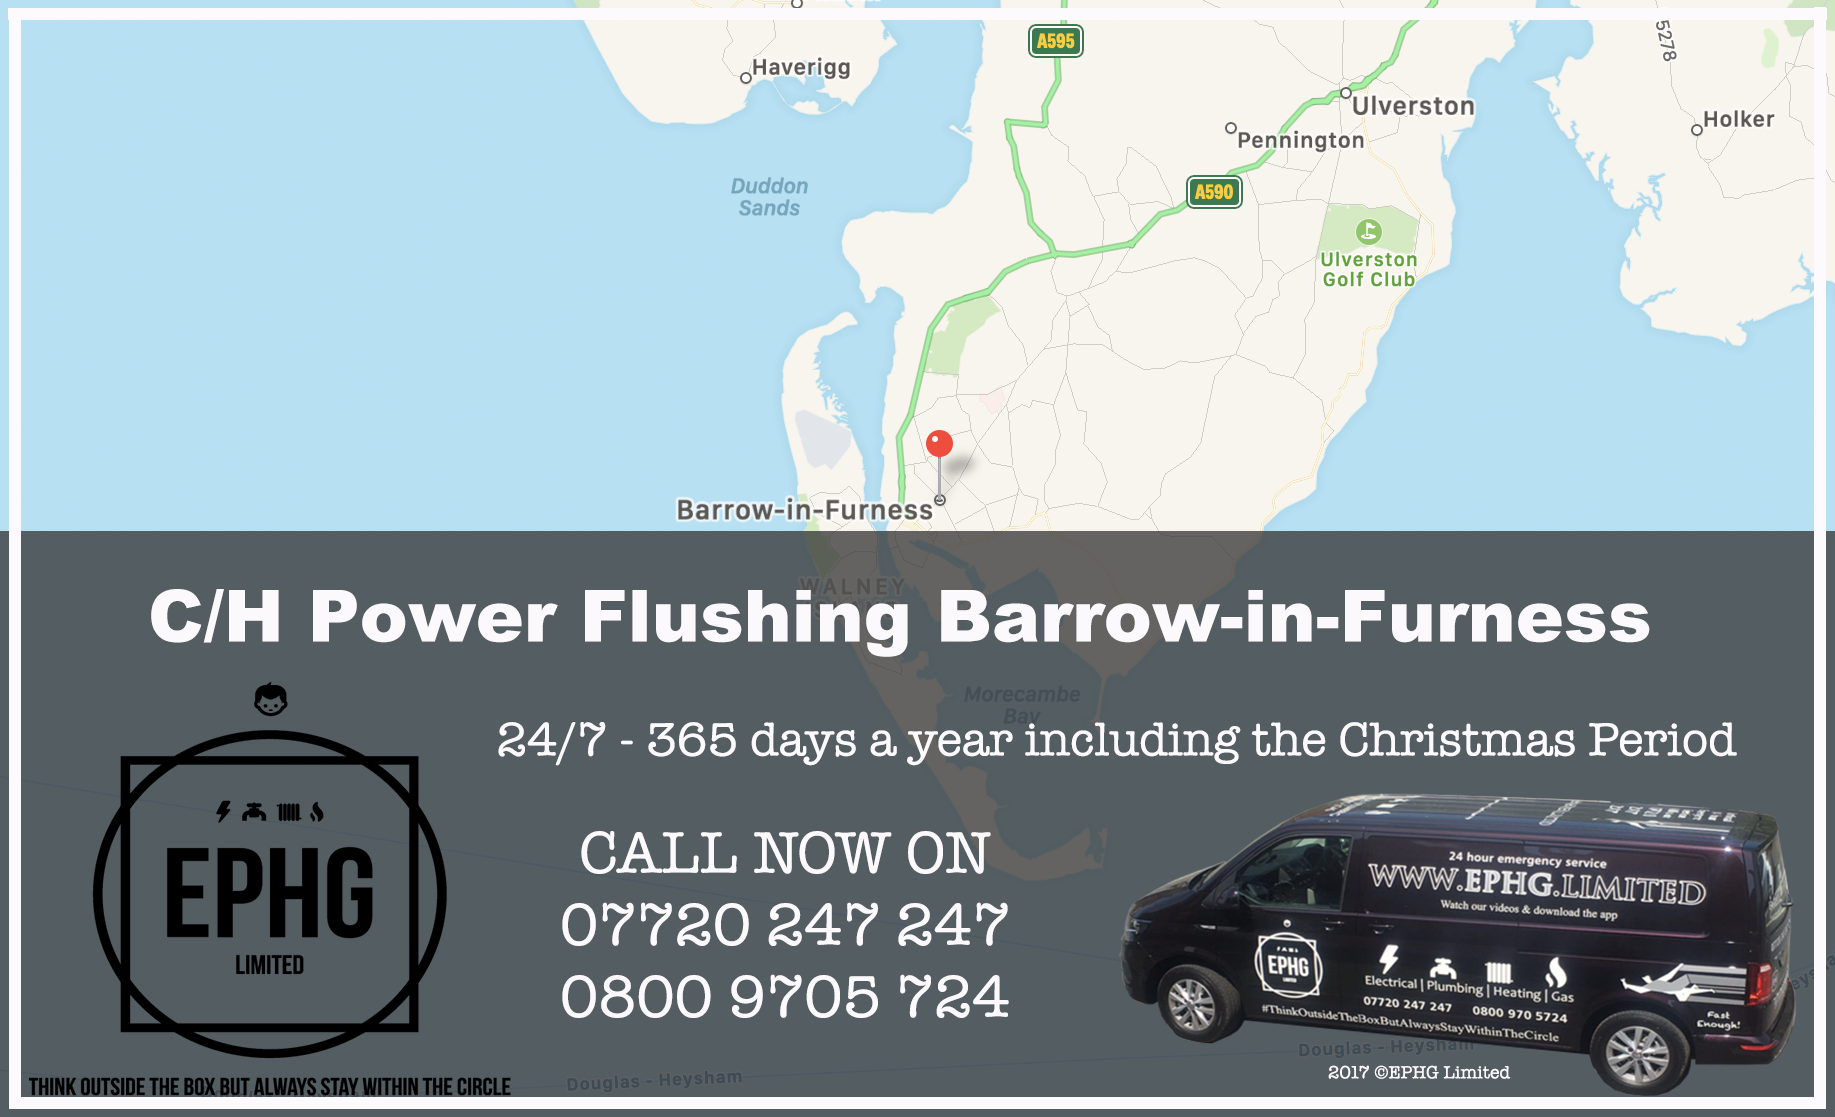 Central Heating Power Flush Barrow-in-Furness